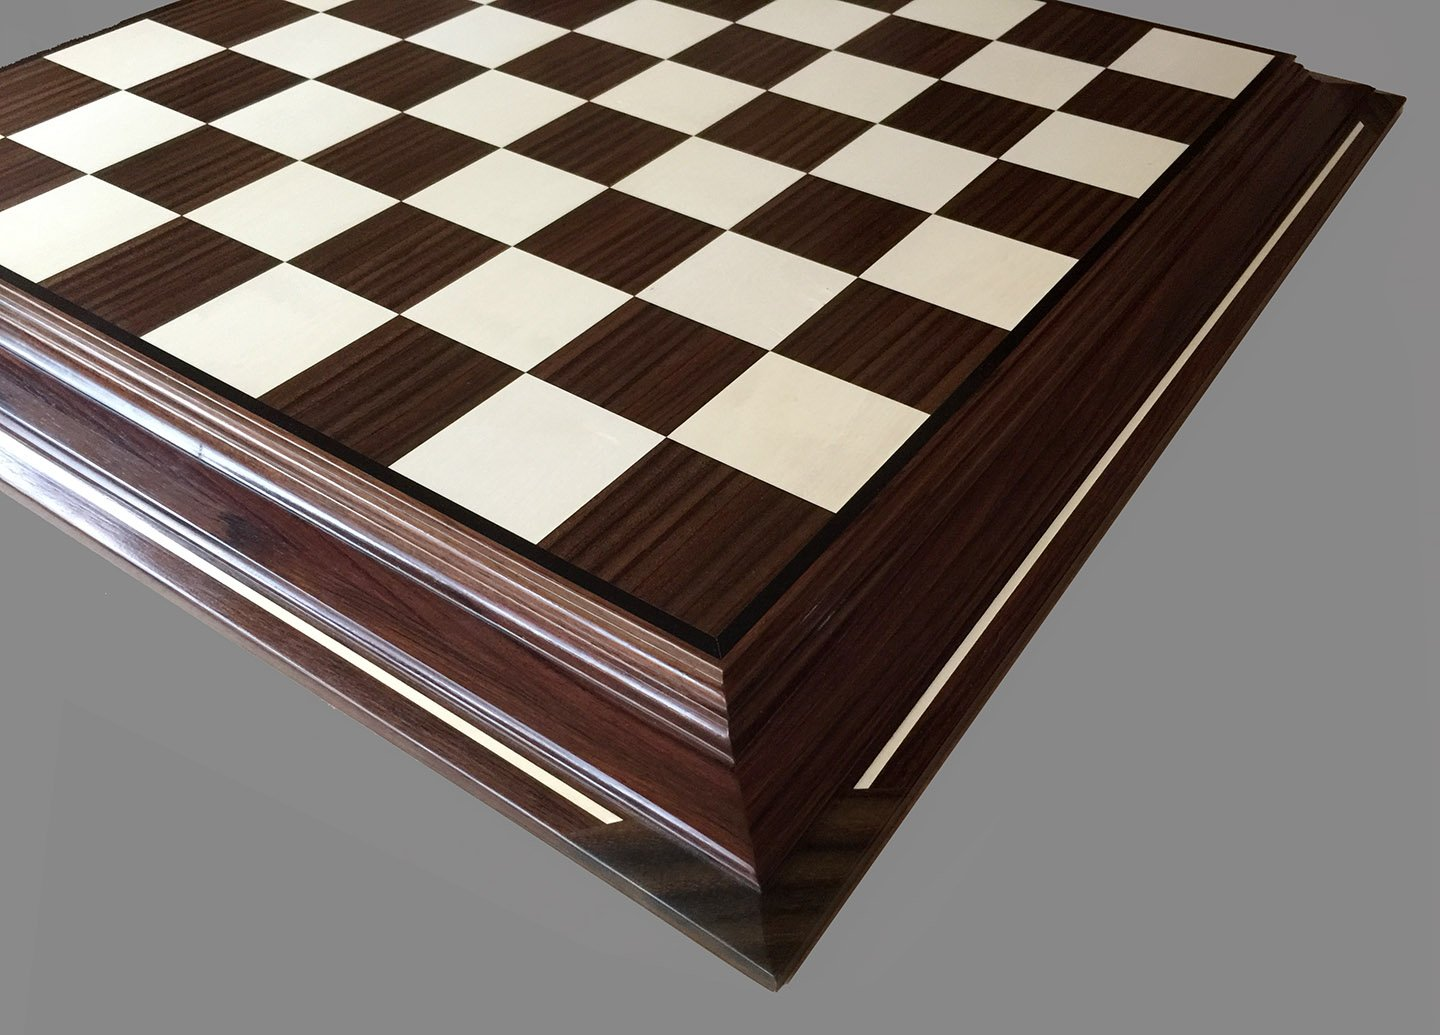 East Indian Rosewood Chessboard